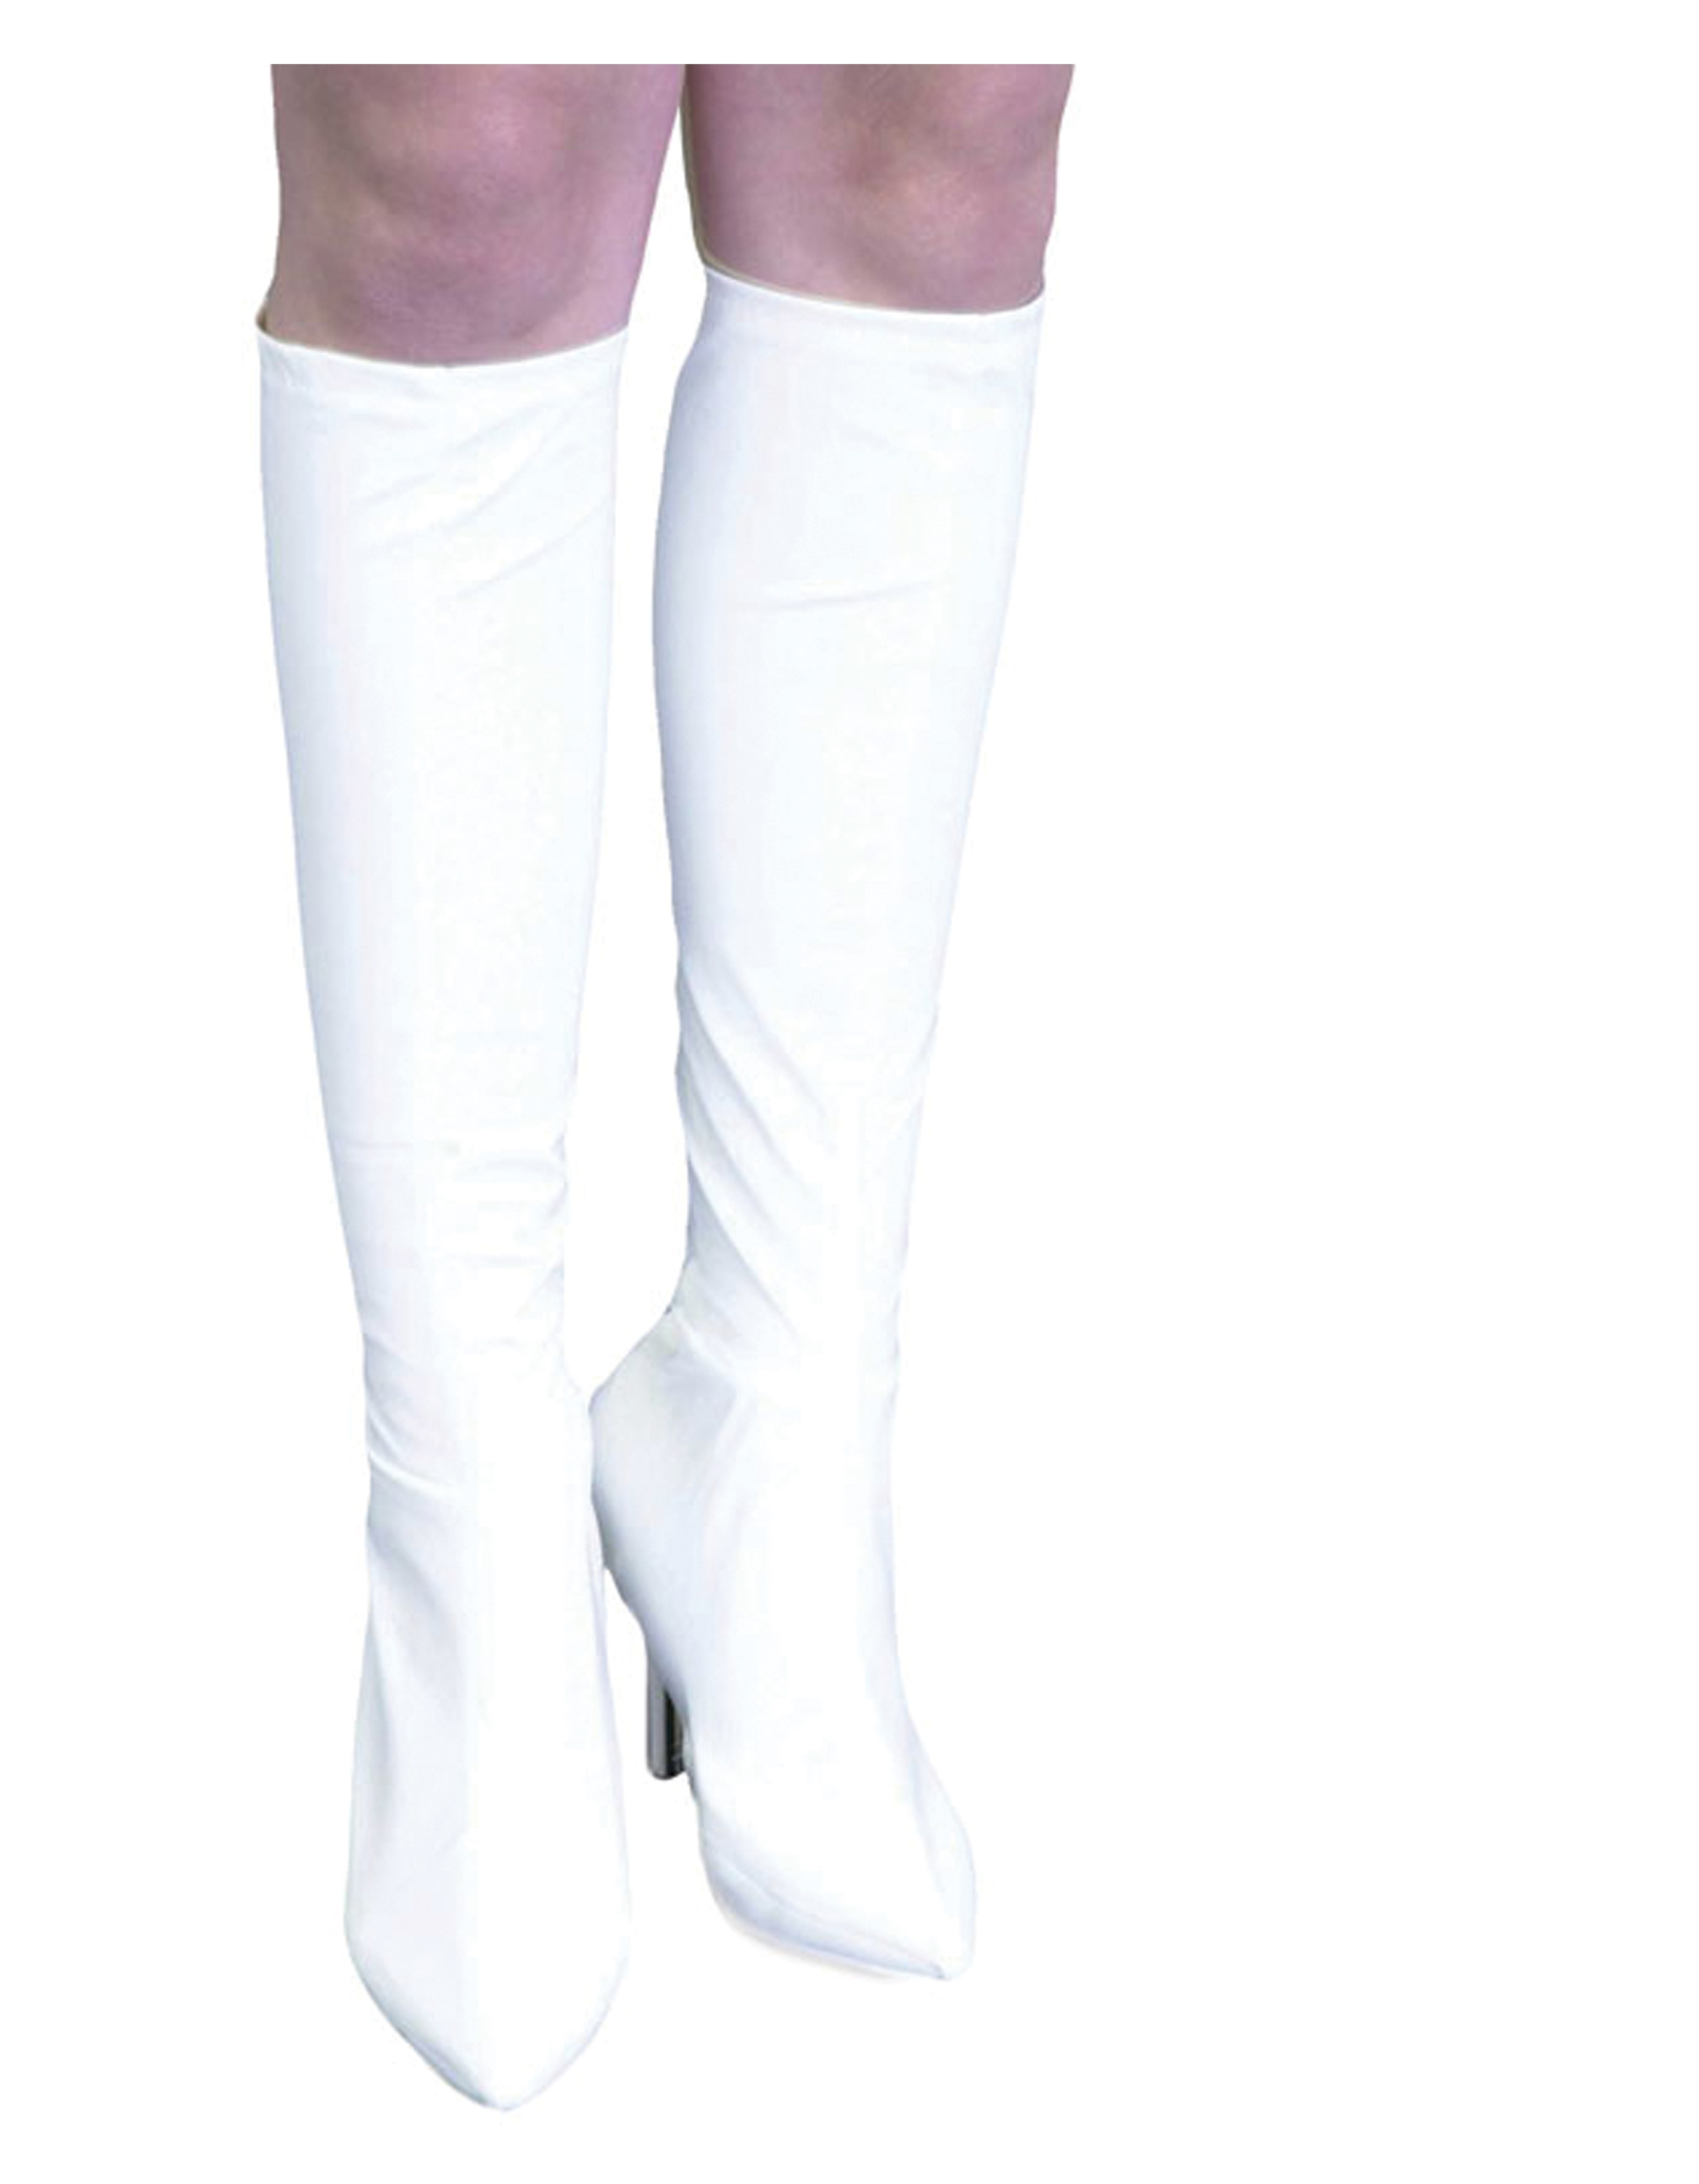 white knee high leather boot covers mr costumes